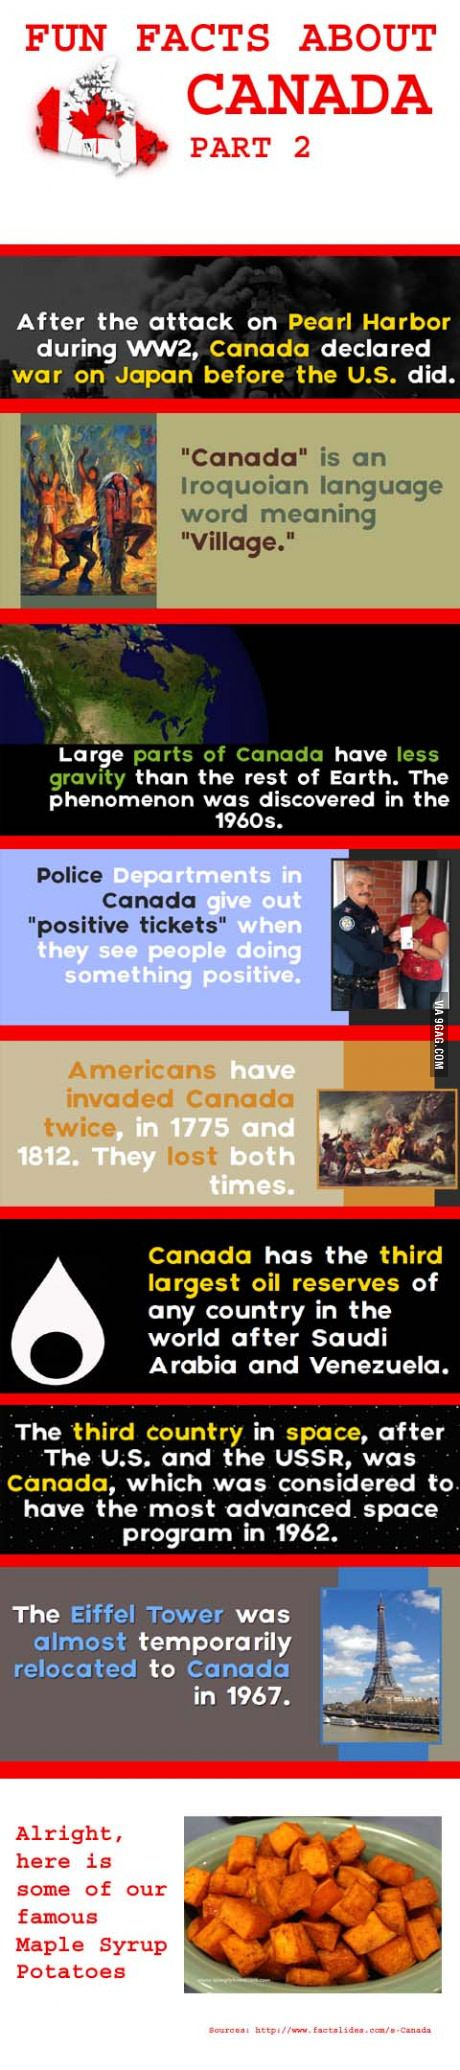 Fun Facts About Canada. Part 2